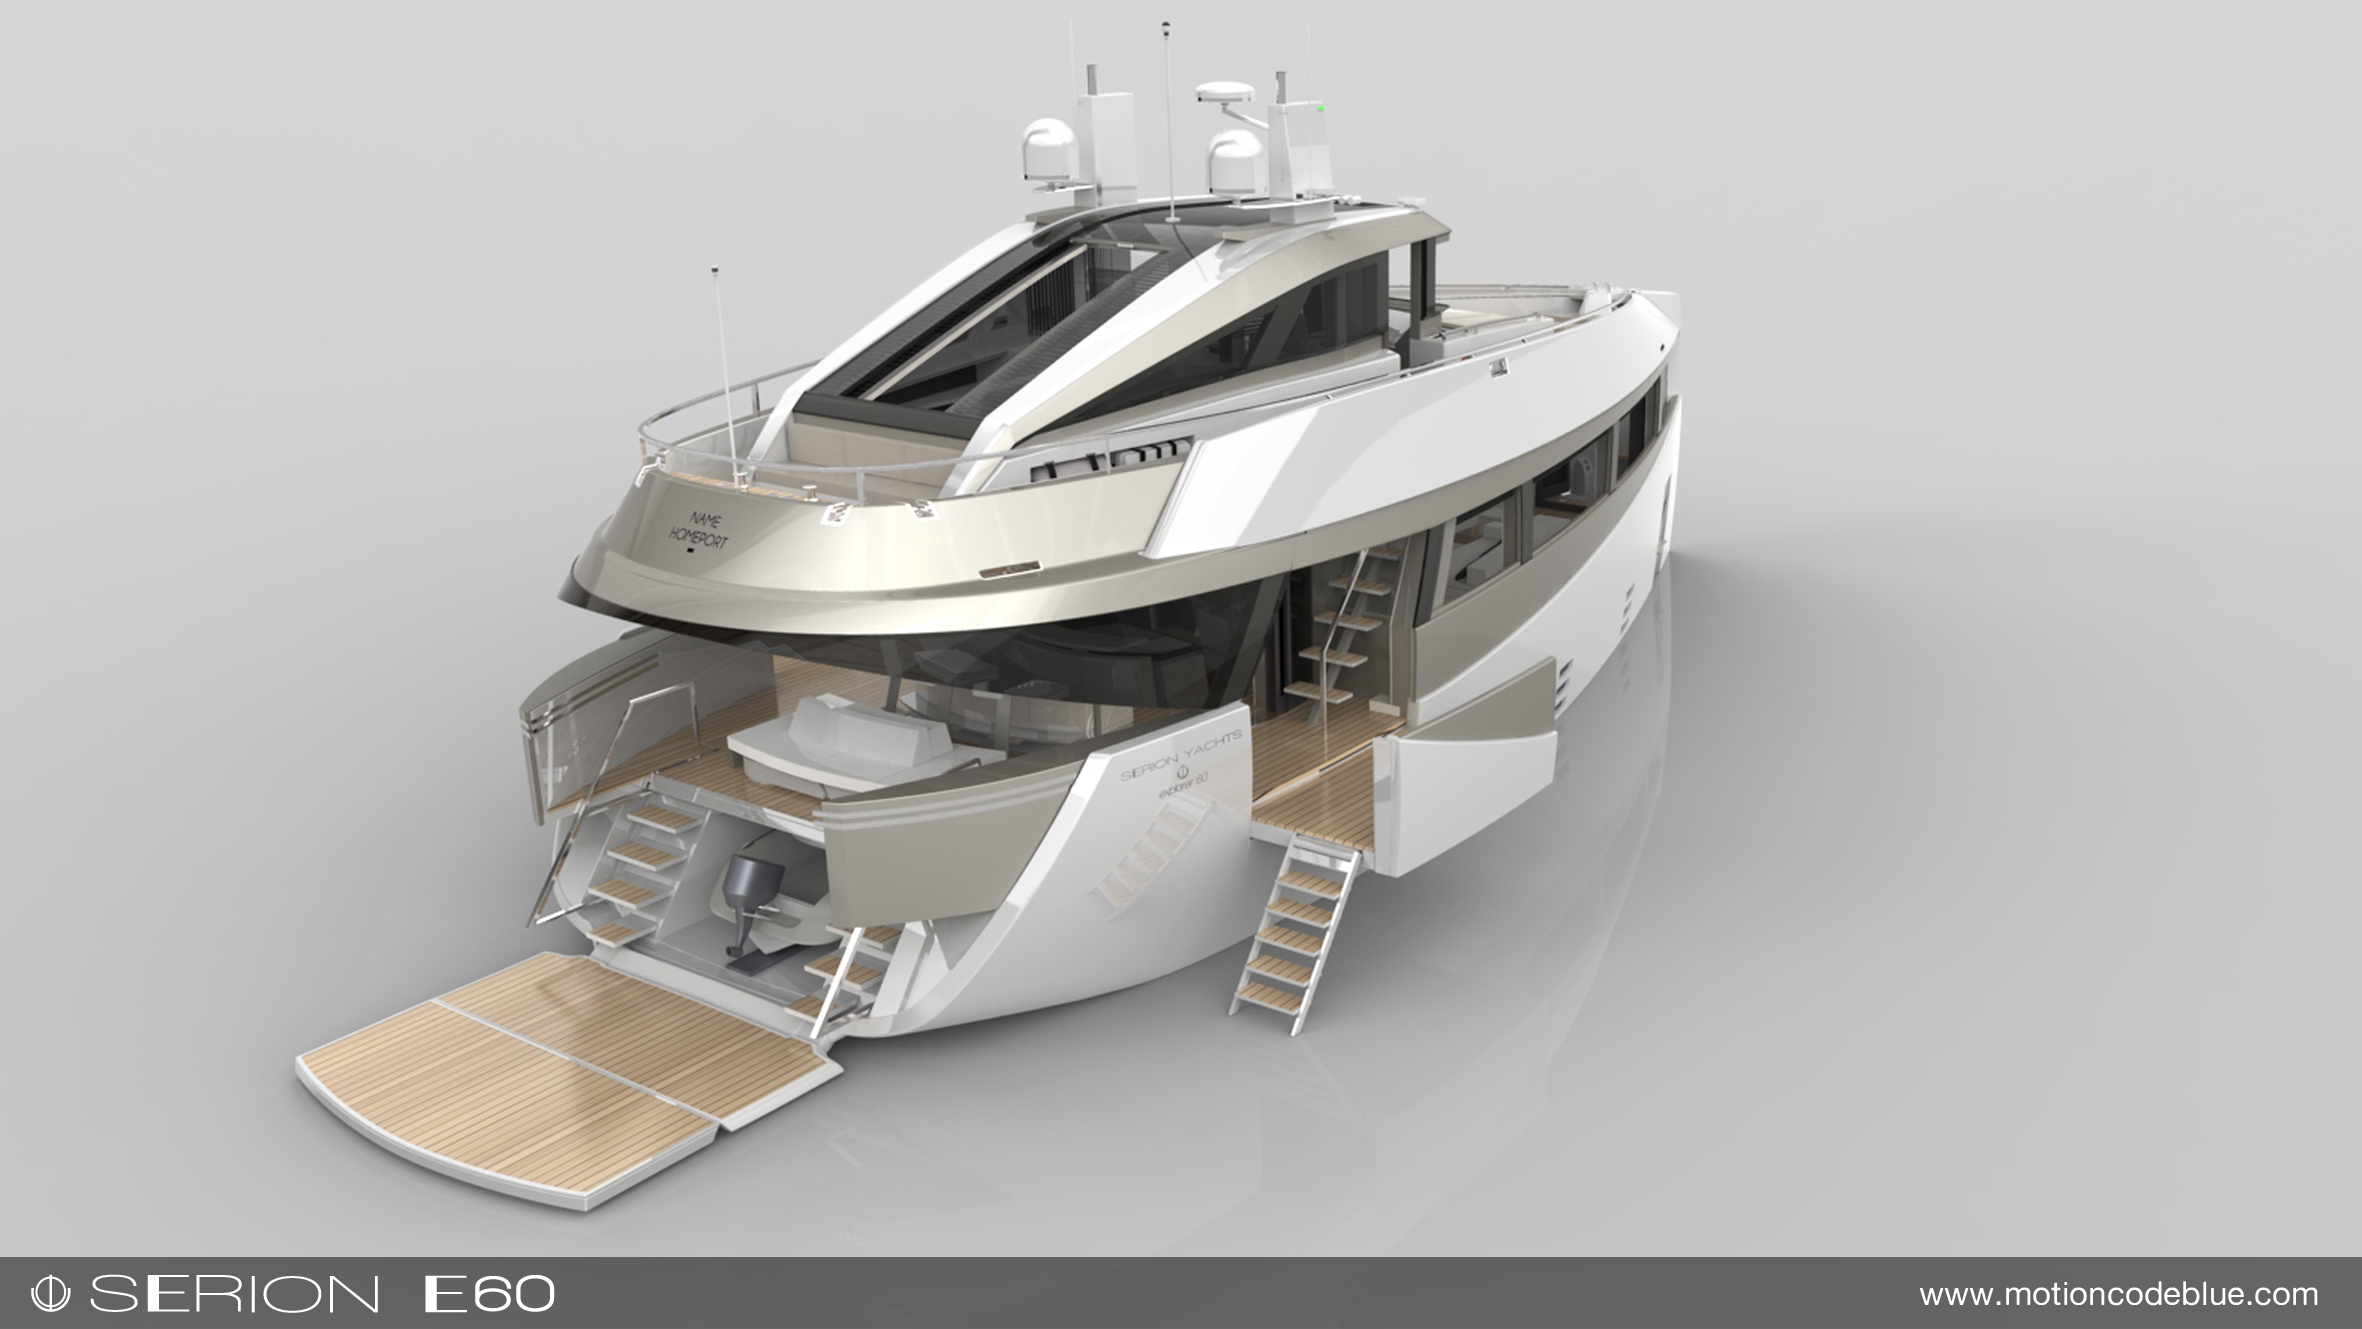 serion_e_60_yacht_by_motion_code_blue_17_